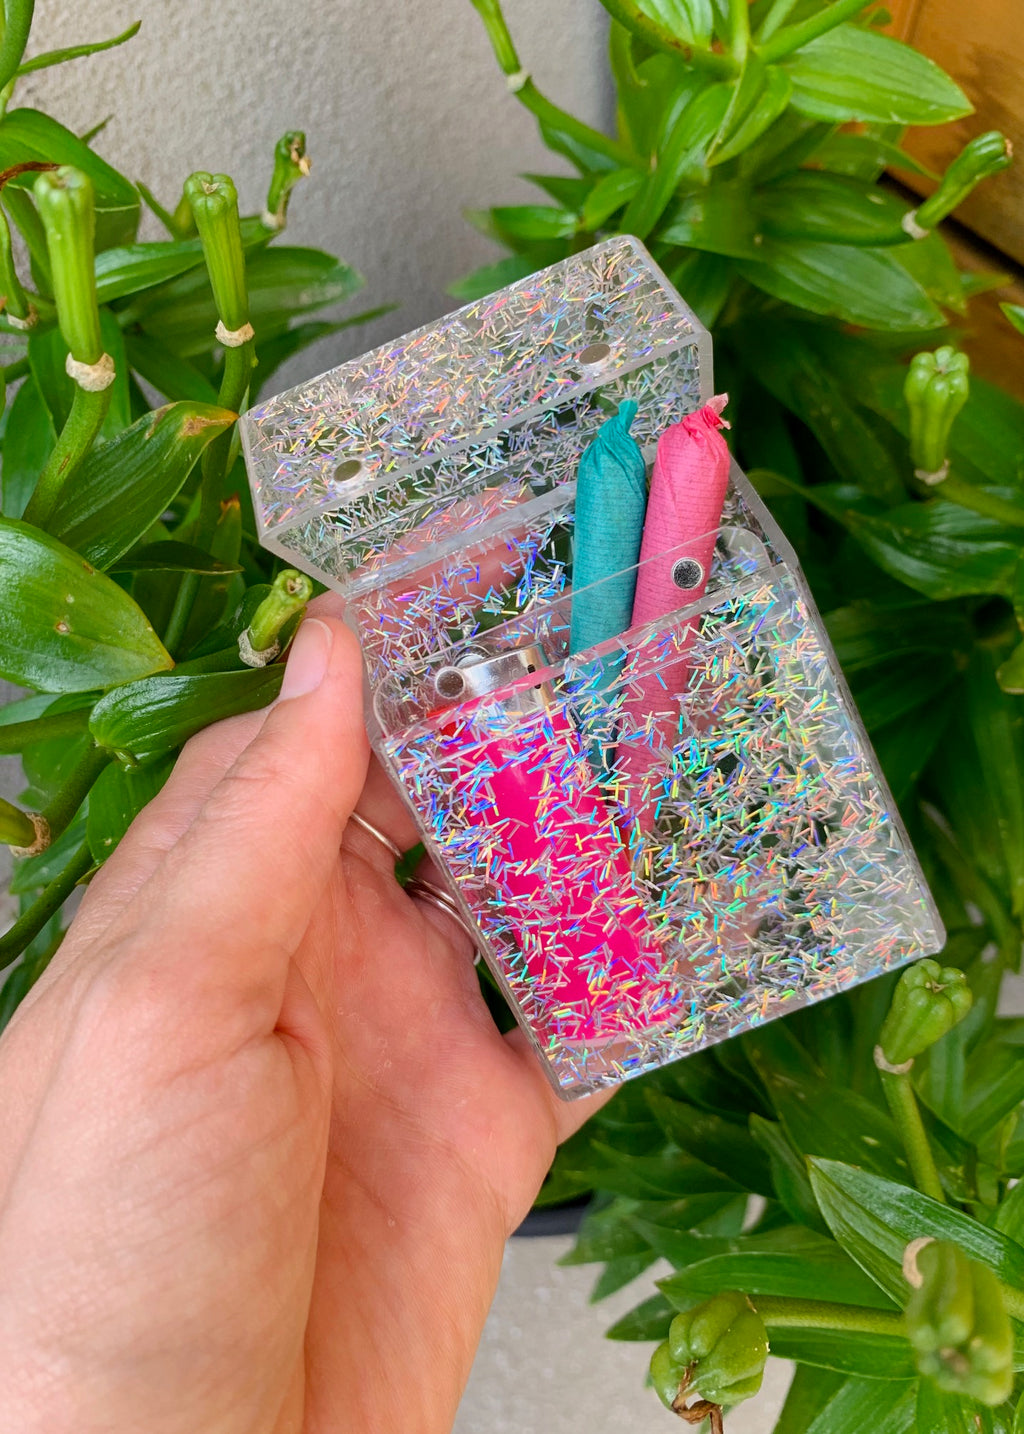 HOLOGRAPHIC JOINT CASE